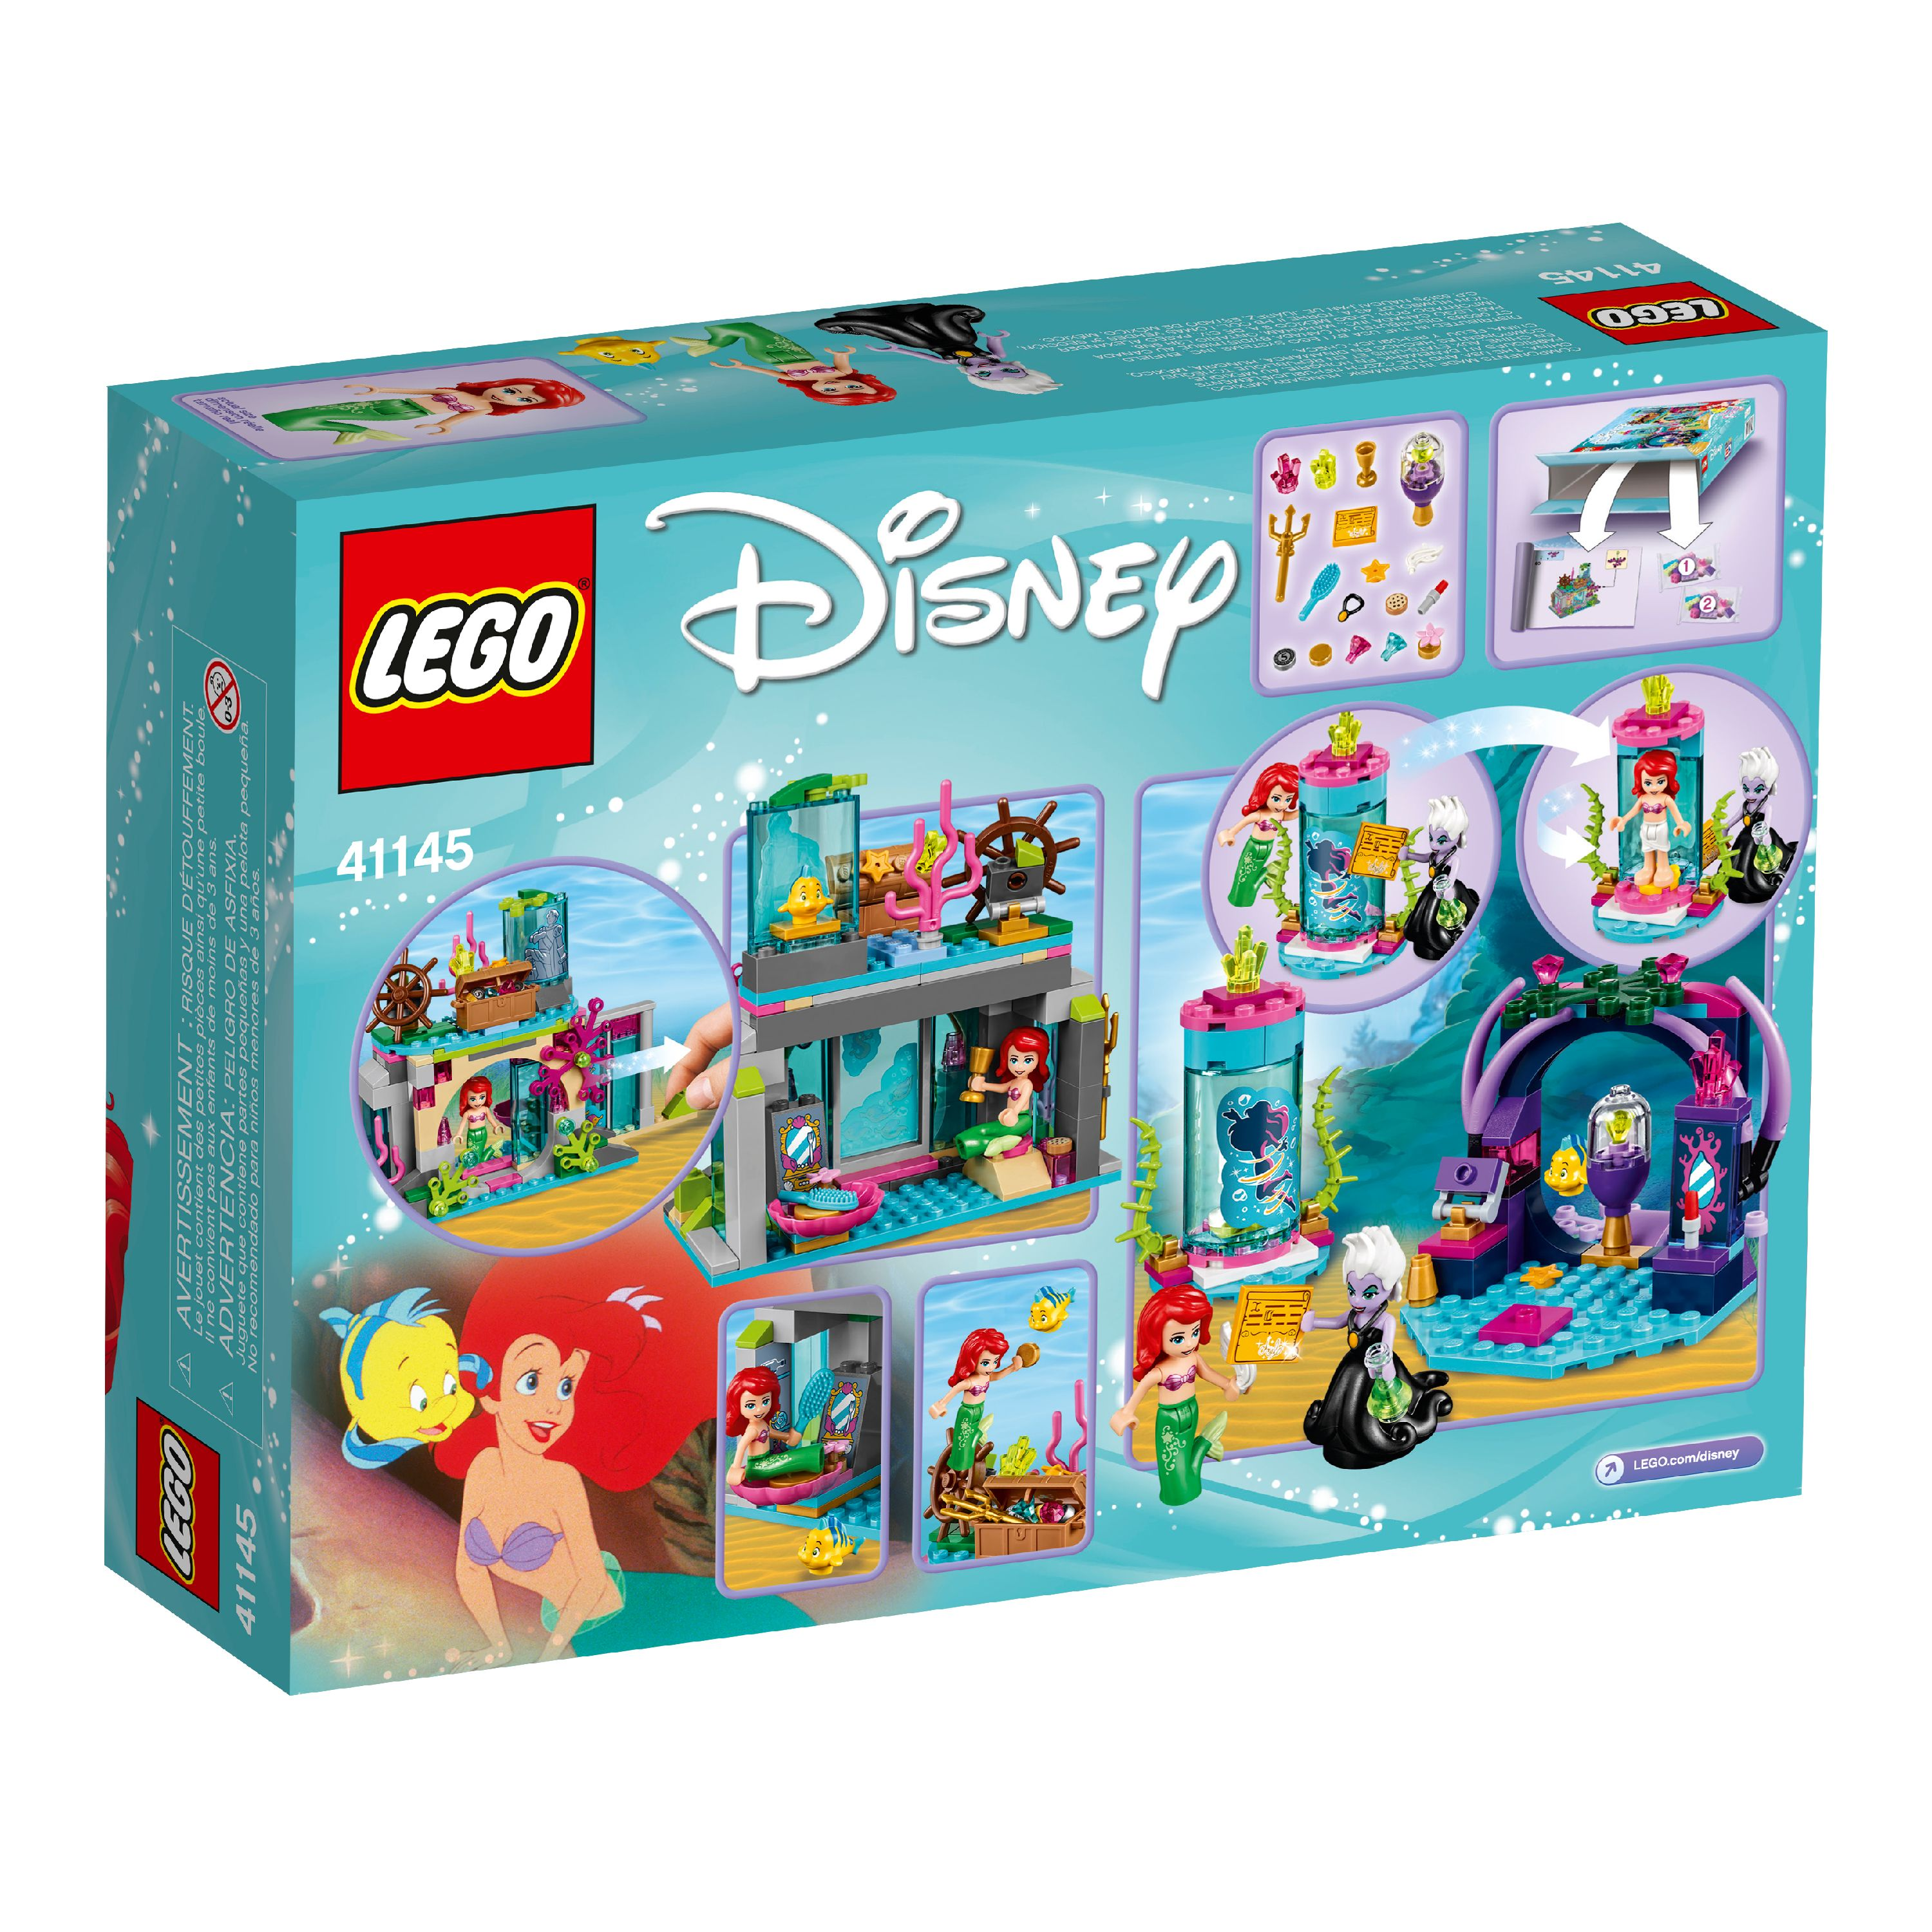 LEGO 41145 Disney Princess ARIEL AND THE MAGICAL SPELL sealed age 5-12